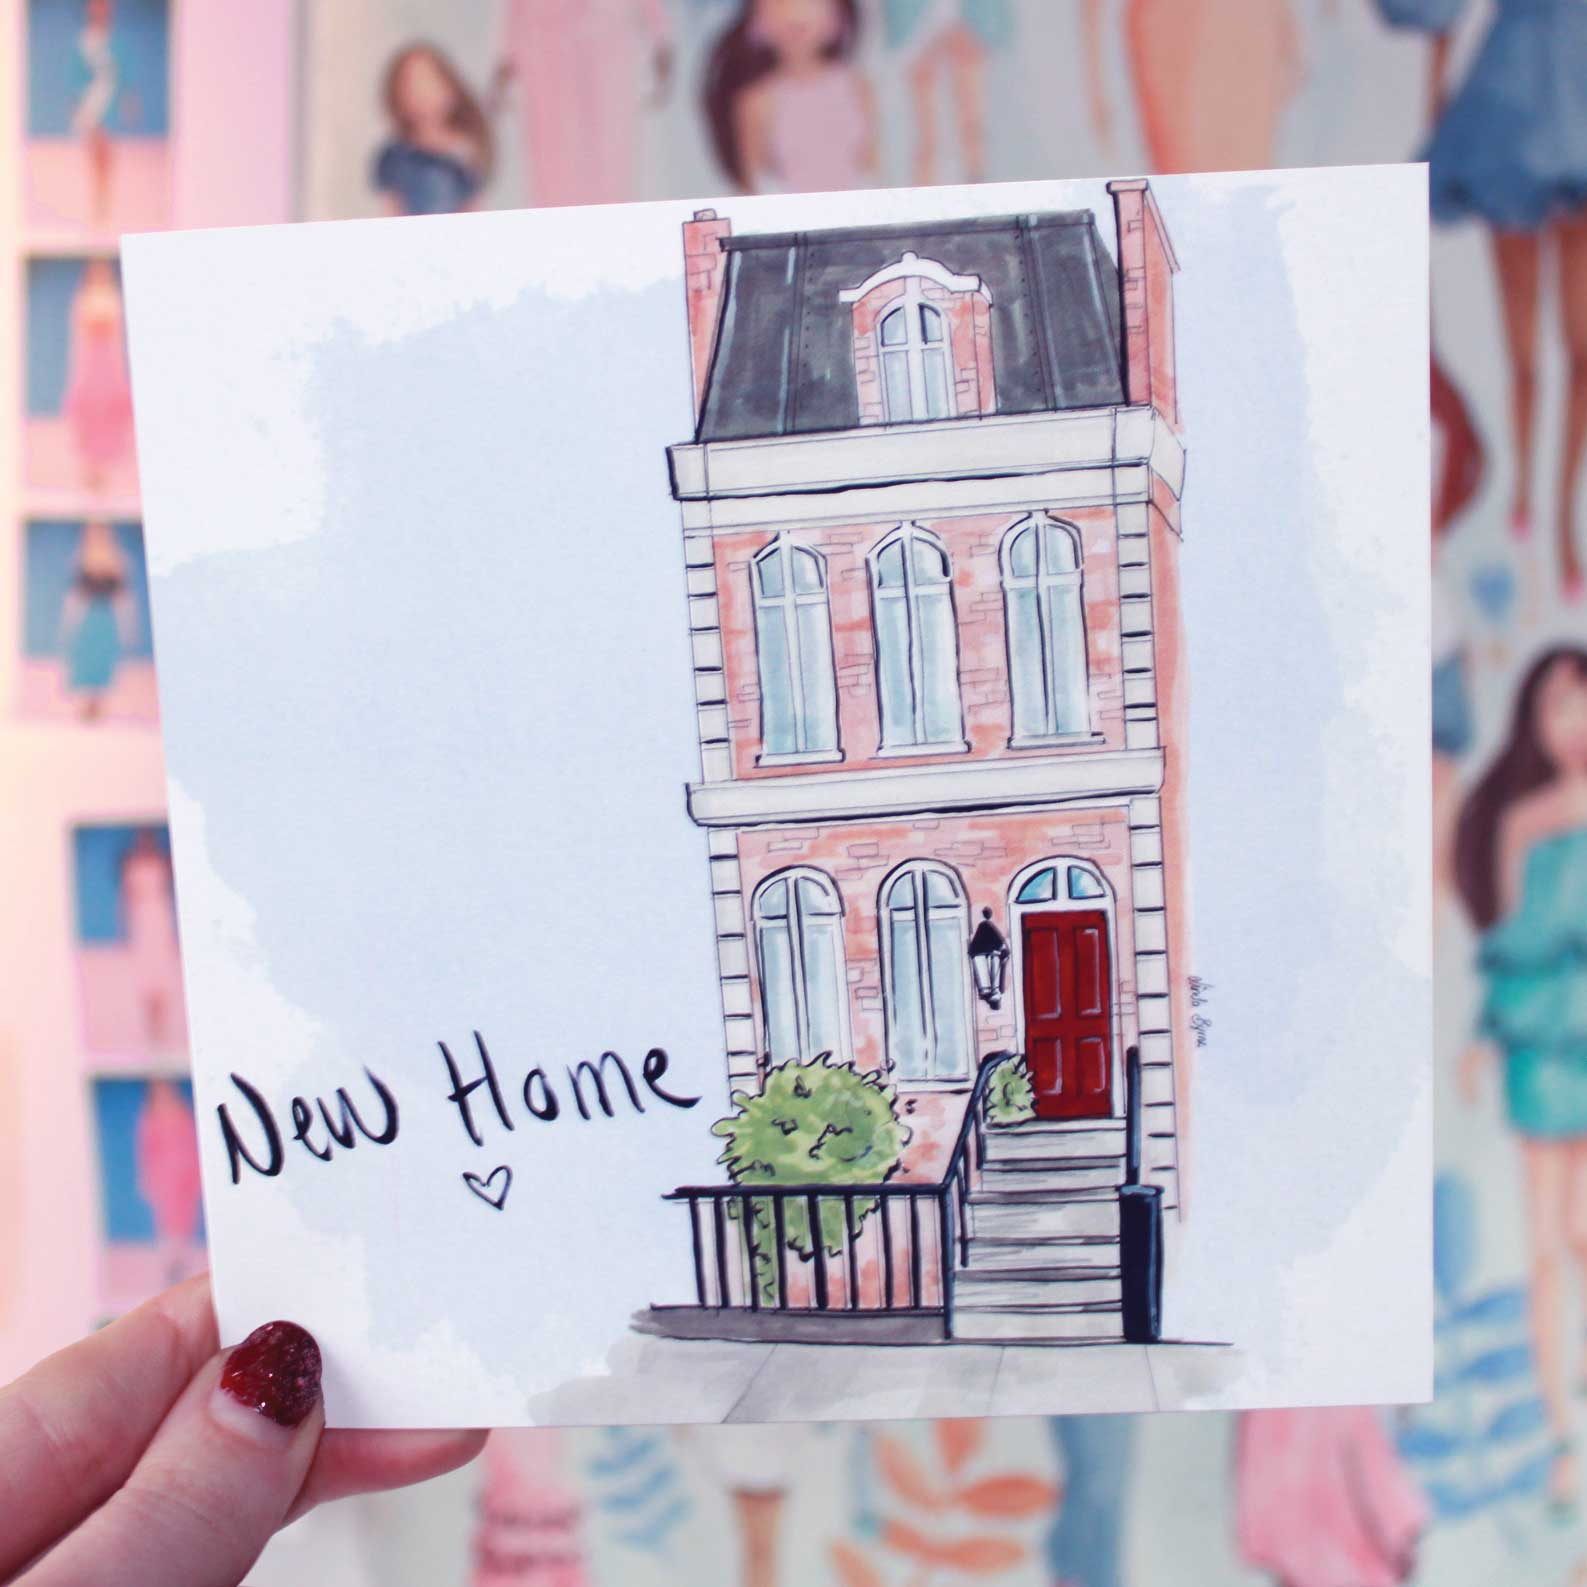 New Home, New House Greeting Card, Linda Byrne Illustration, Town house illustration, Red brick house